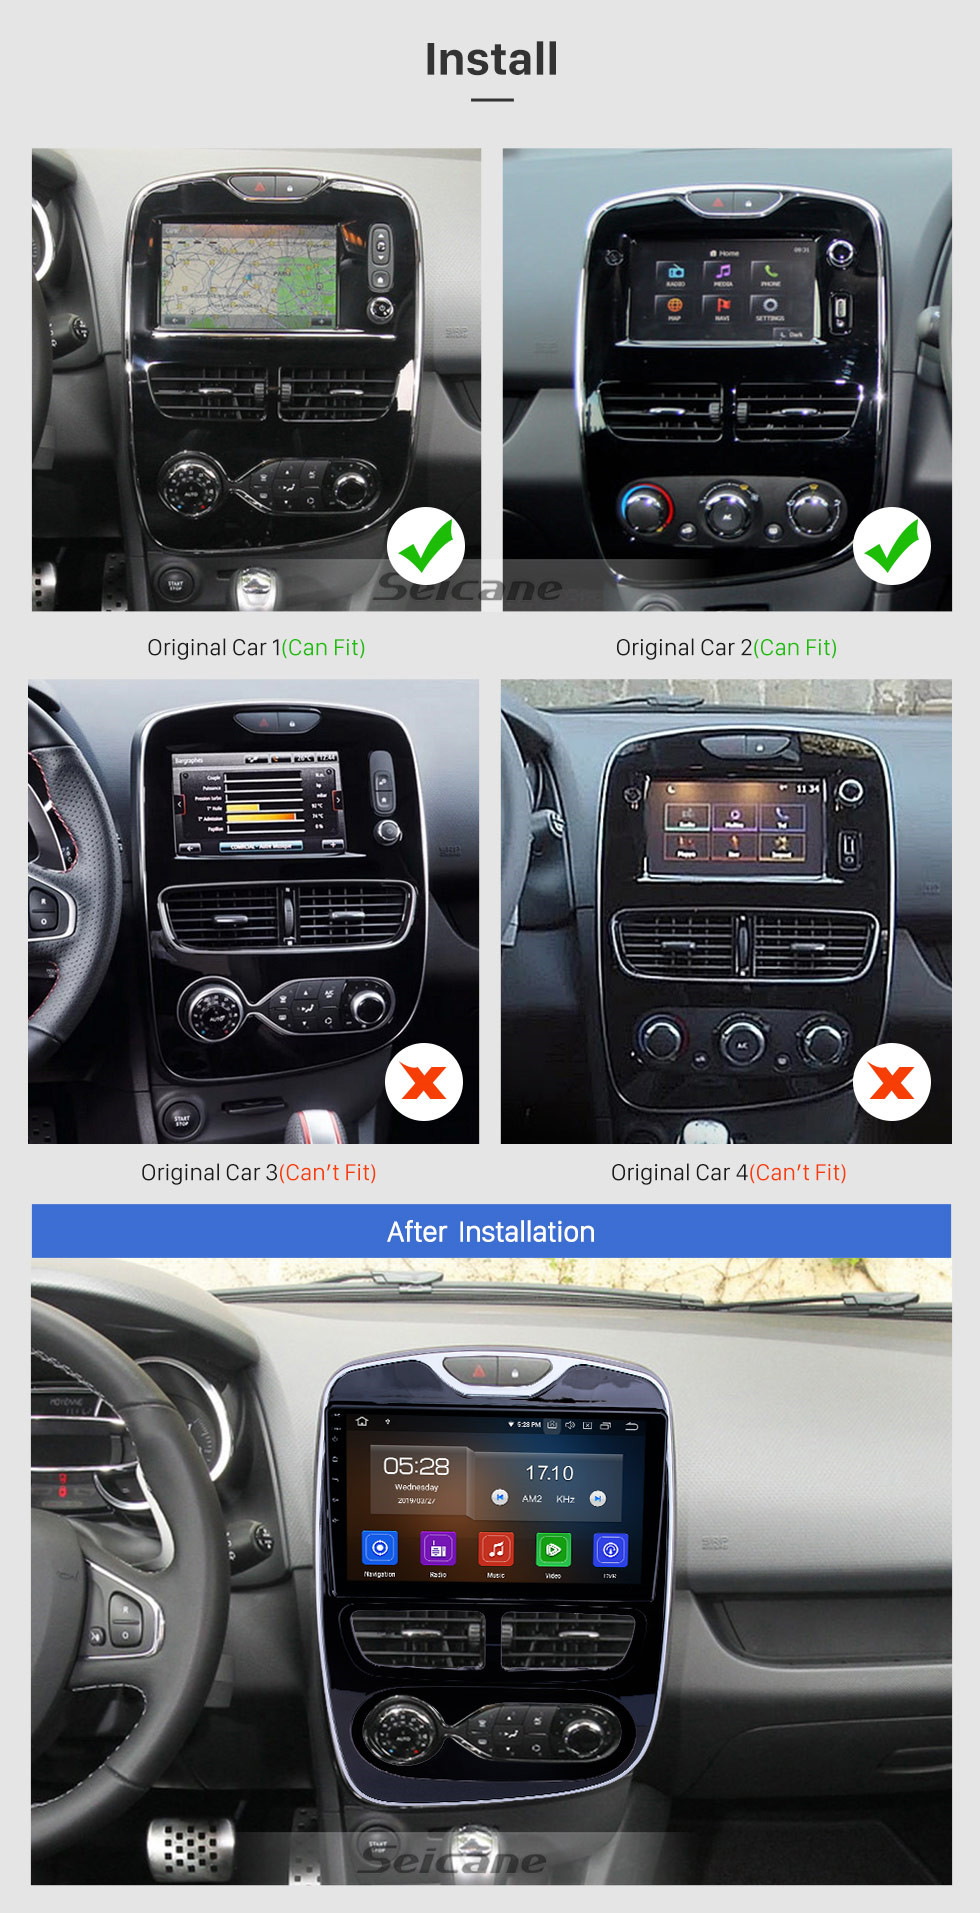 Seicane 10.1 pulgadas HD Pantalla táctil GPS Sistema de navegación GPS Android 9.0 Auto Estéreo 2012-2016 Renault Clio Digital / Analógico MT Soporte Estéreo Bluetooth 3G / 4G WIFI OBDII Control del volante de video DVR